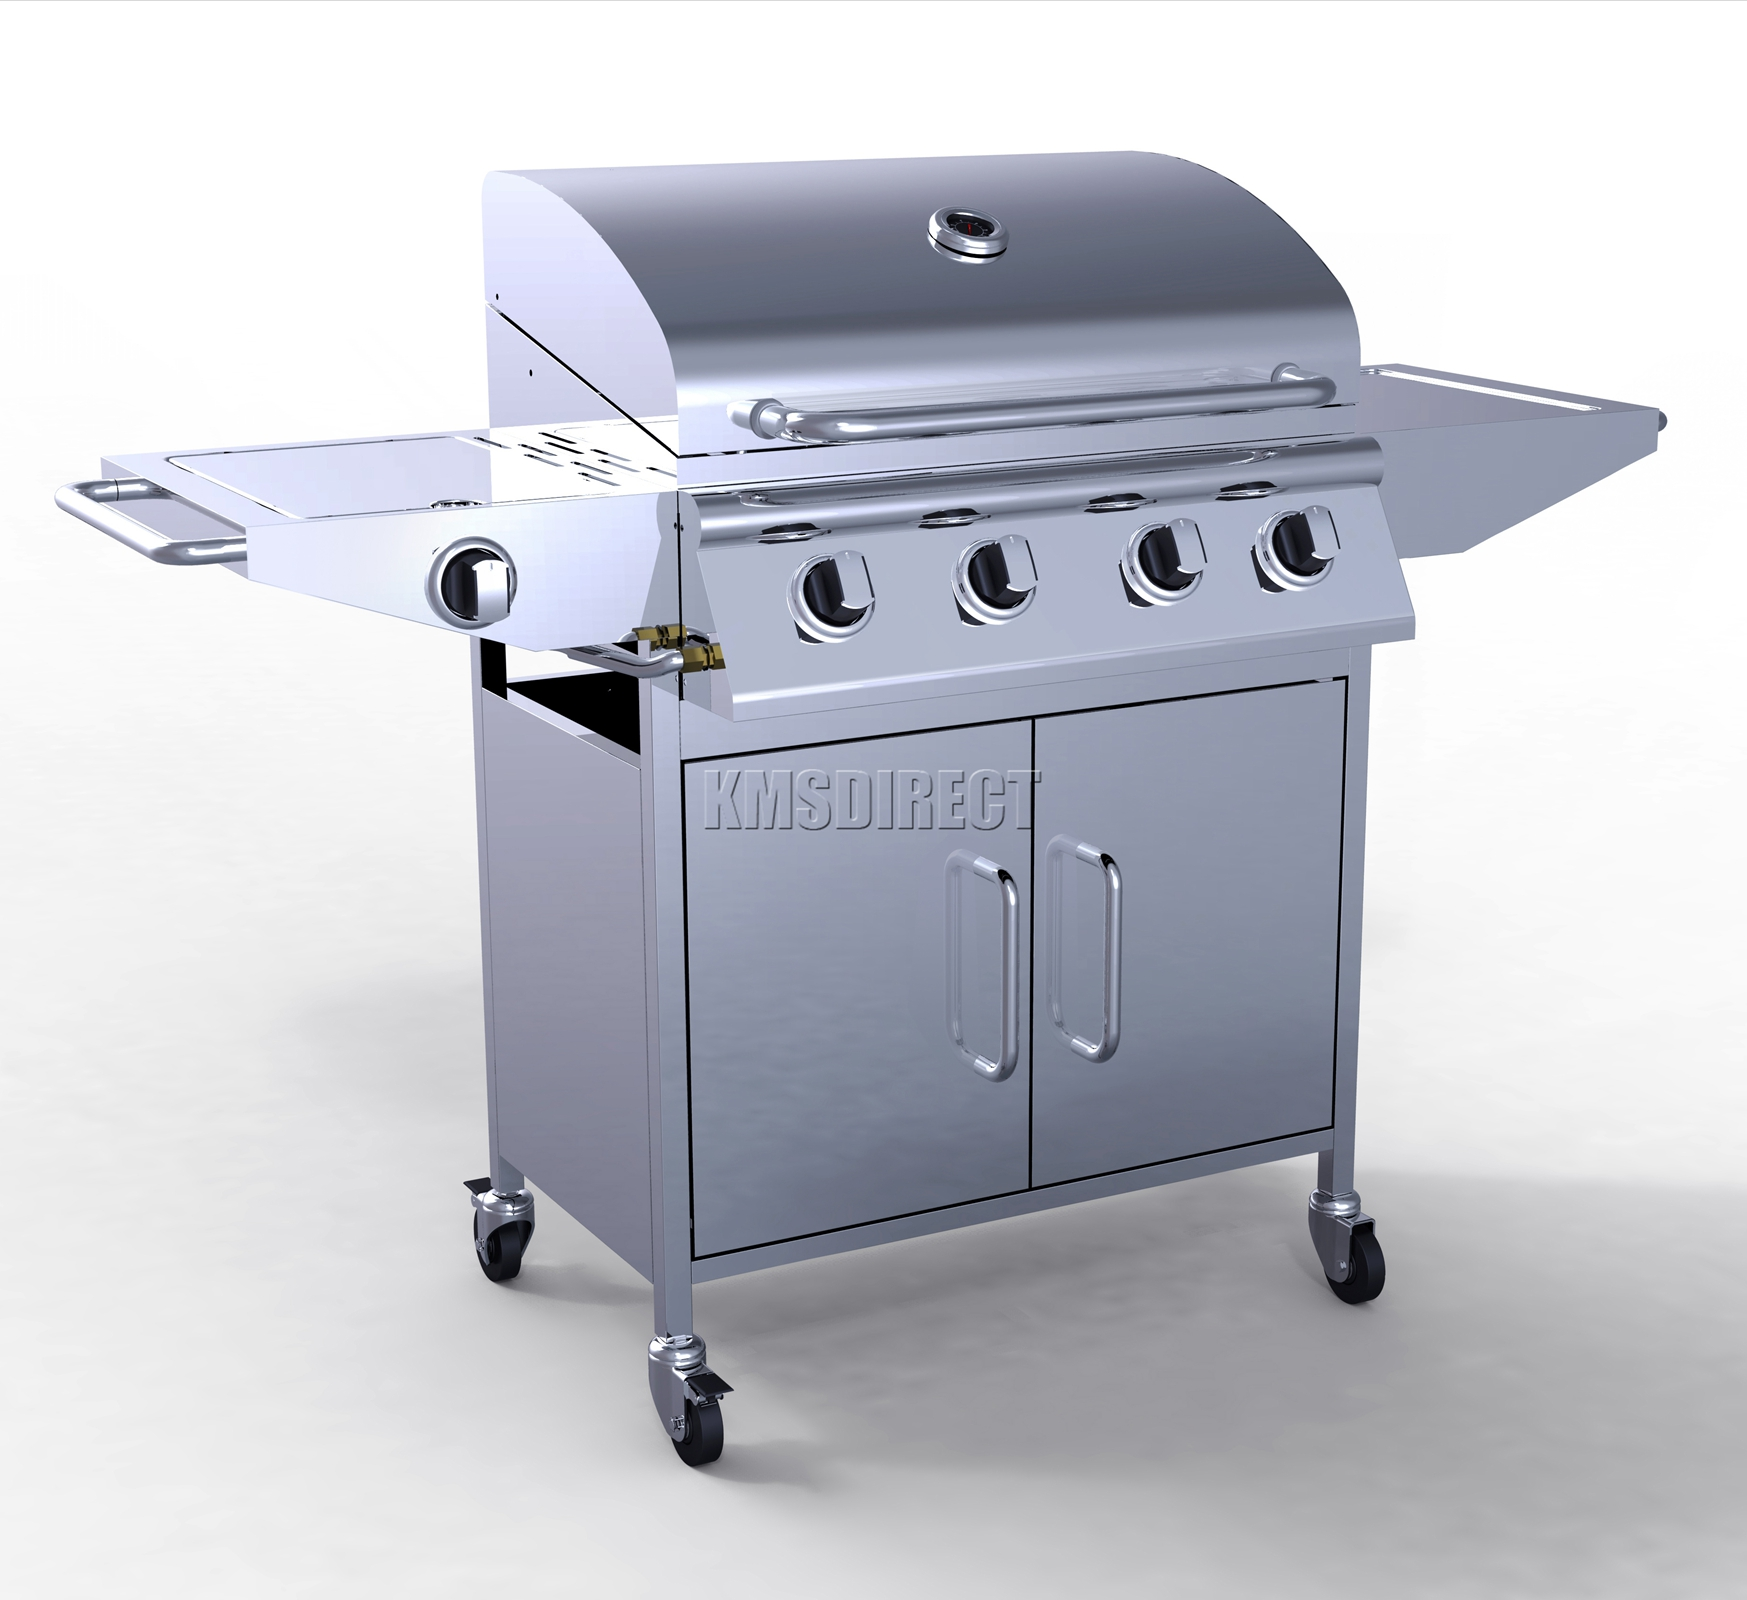 4 burner bbq gas grill edelstahl grill 1 seite silber. Black Bedroom Furniture Sets. Home Design Ideas